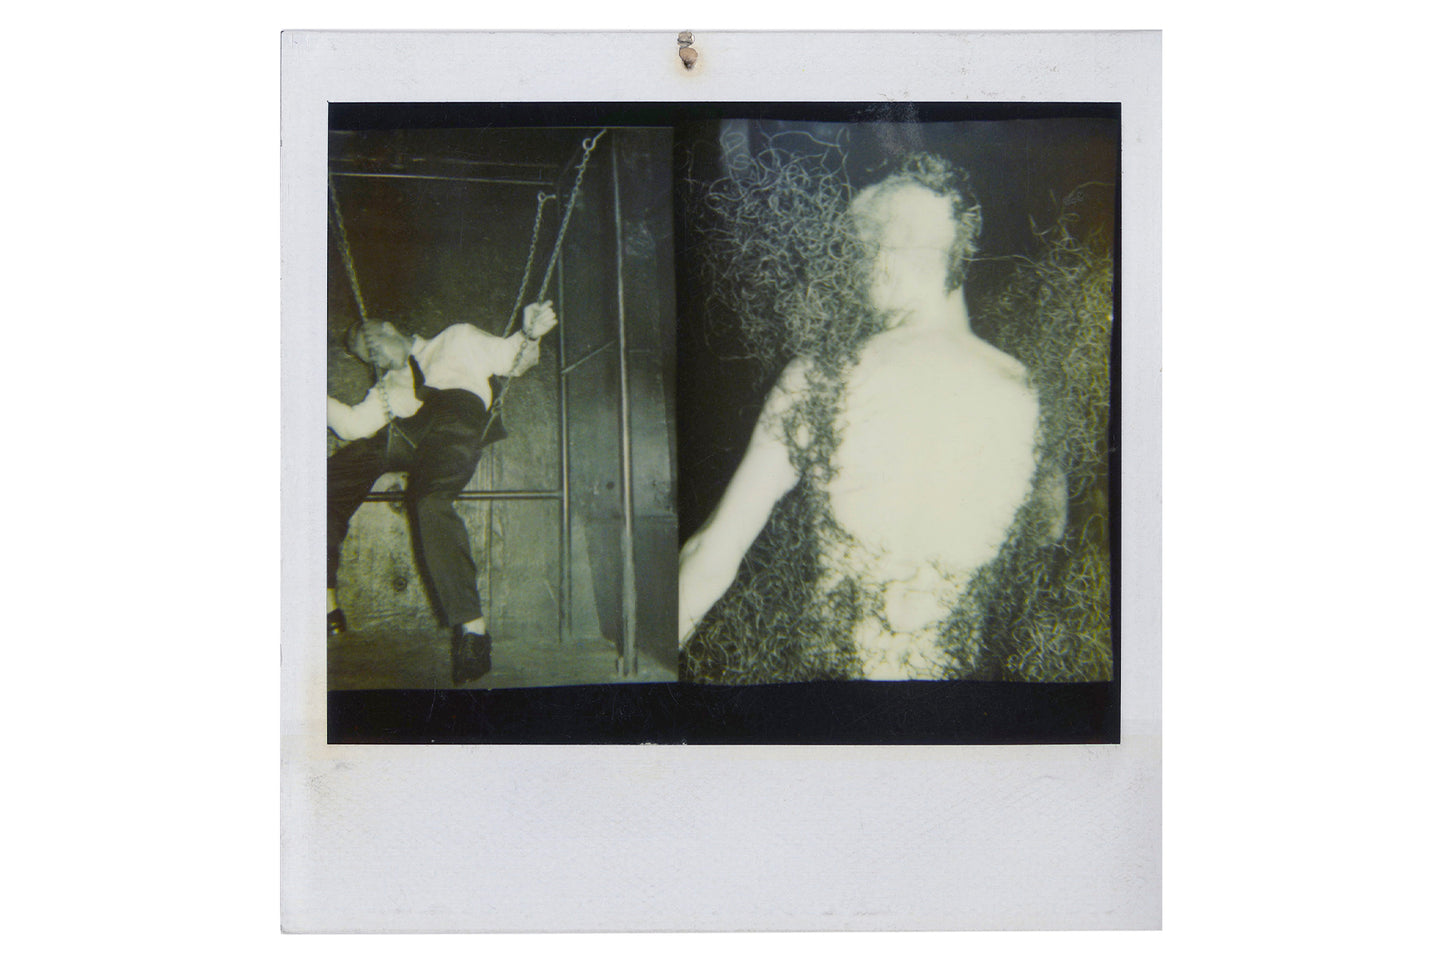 Boy in Swing and in Wire Dress, 1995